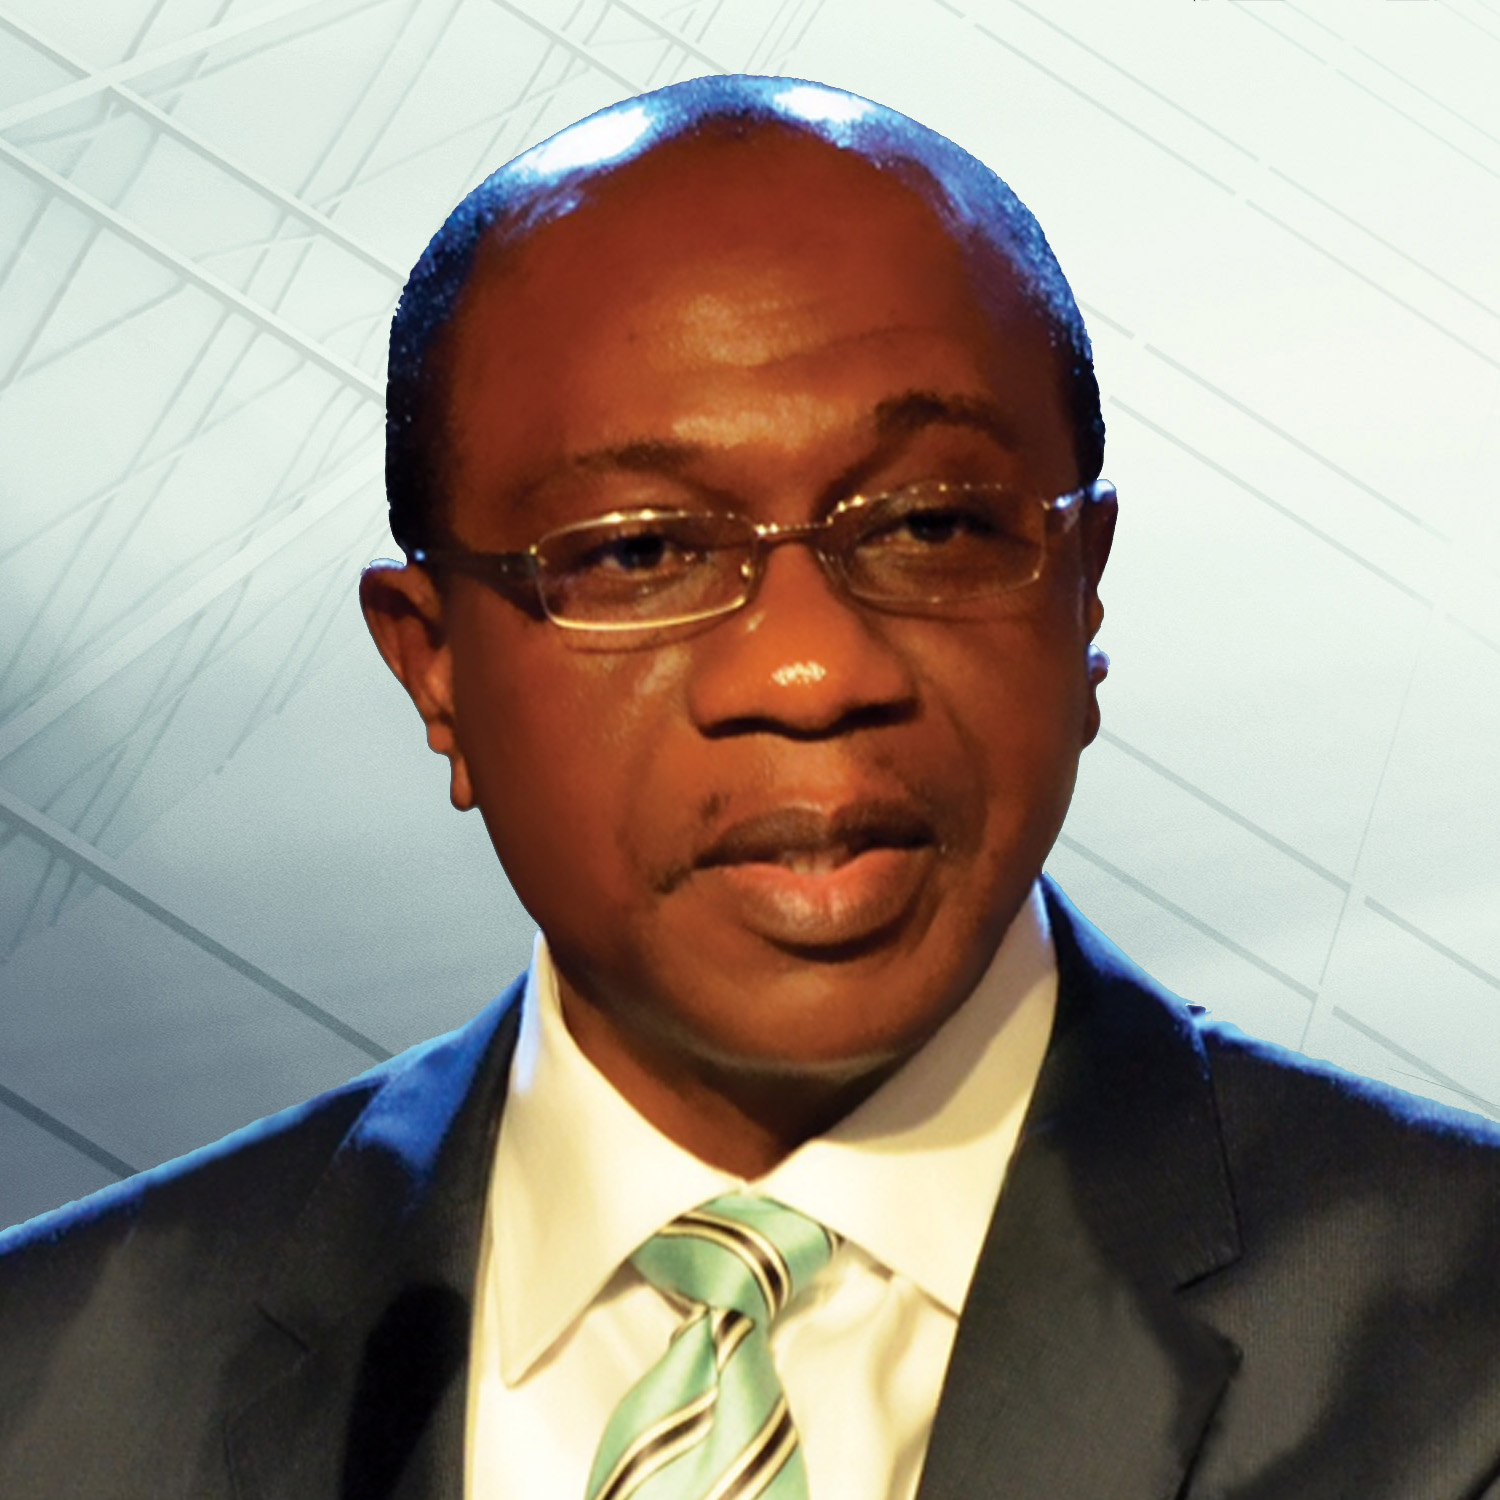 Godwin Emefiele, Central Bank of Nigeria Governor